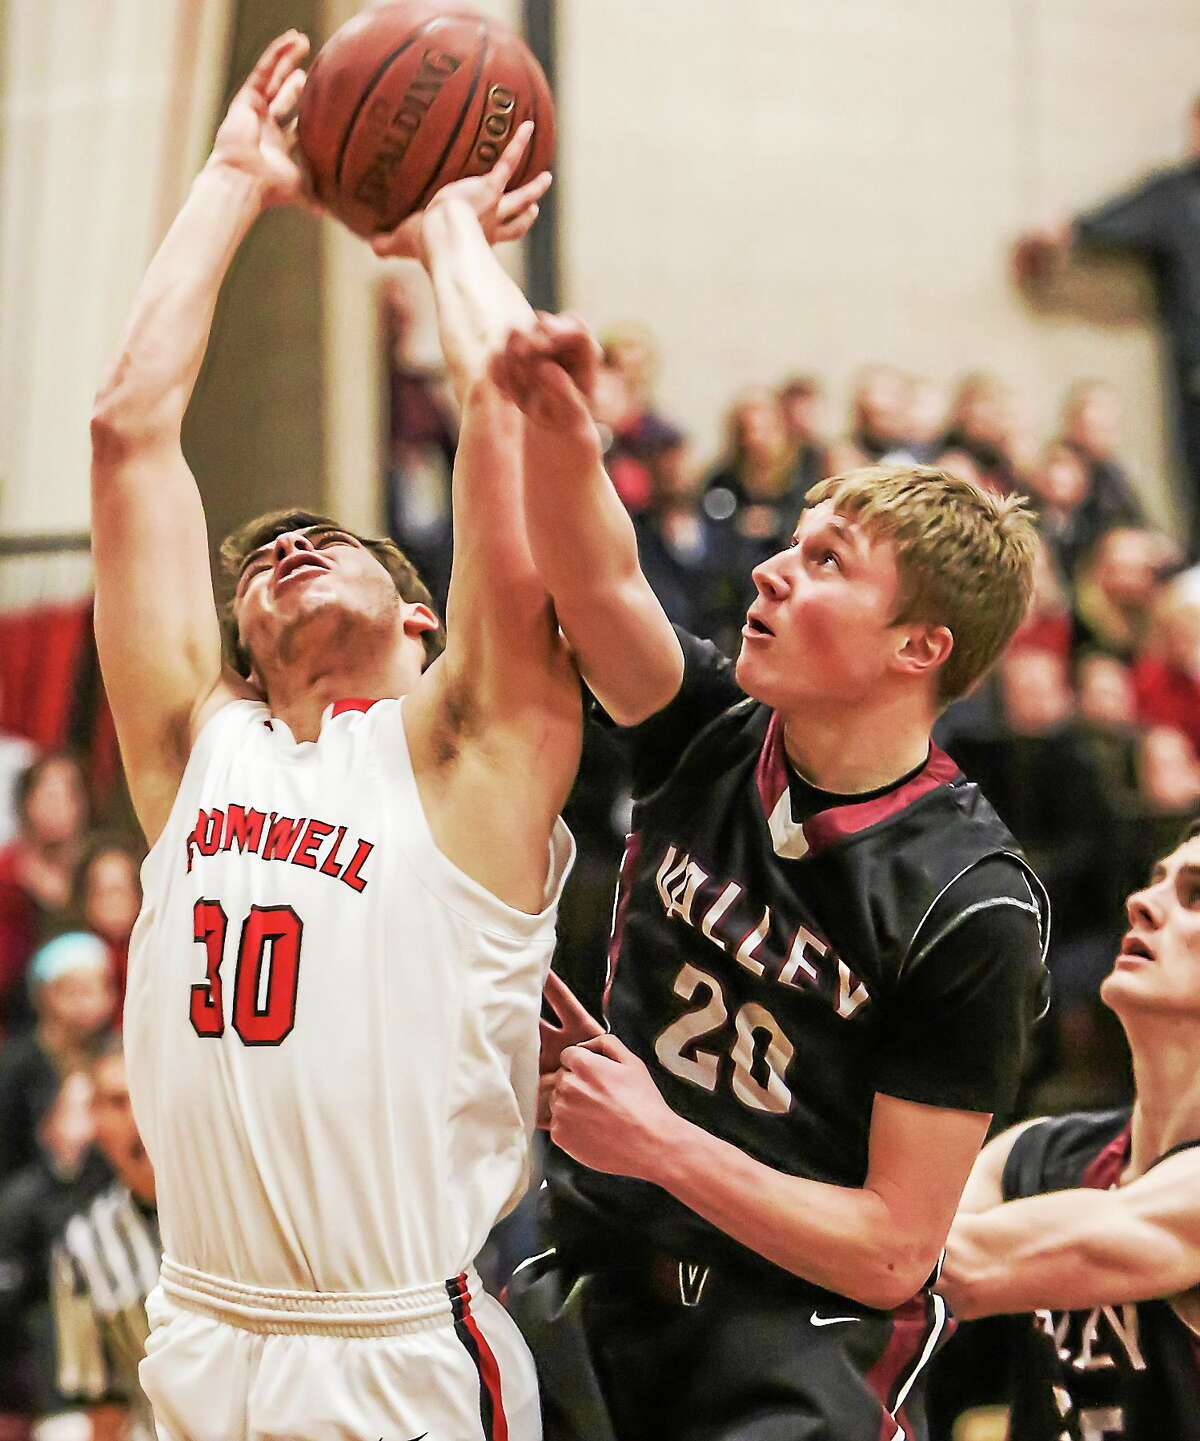 Cromwell's Logan Lessard goes up strong for a jump shot, but is fouled by Valley's Evan Smith.